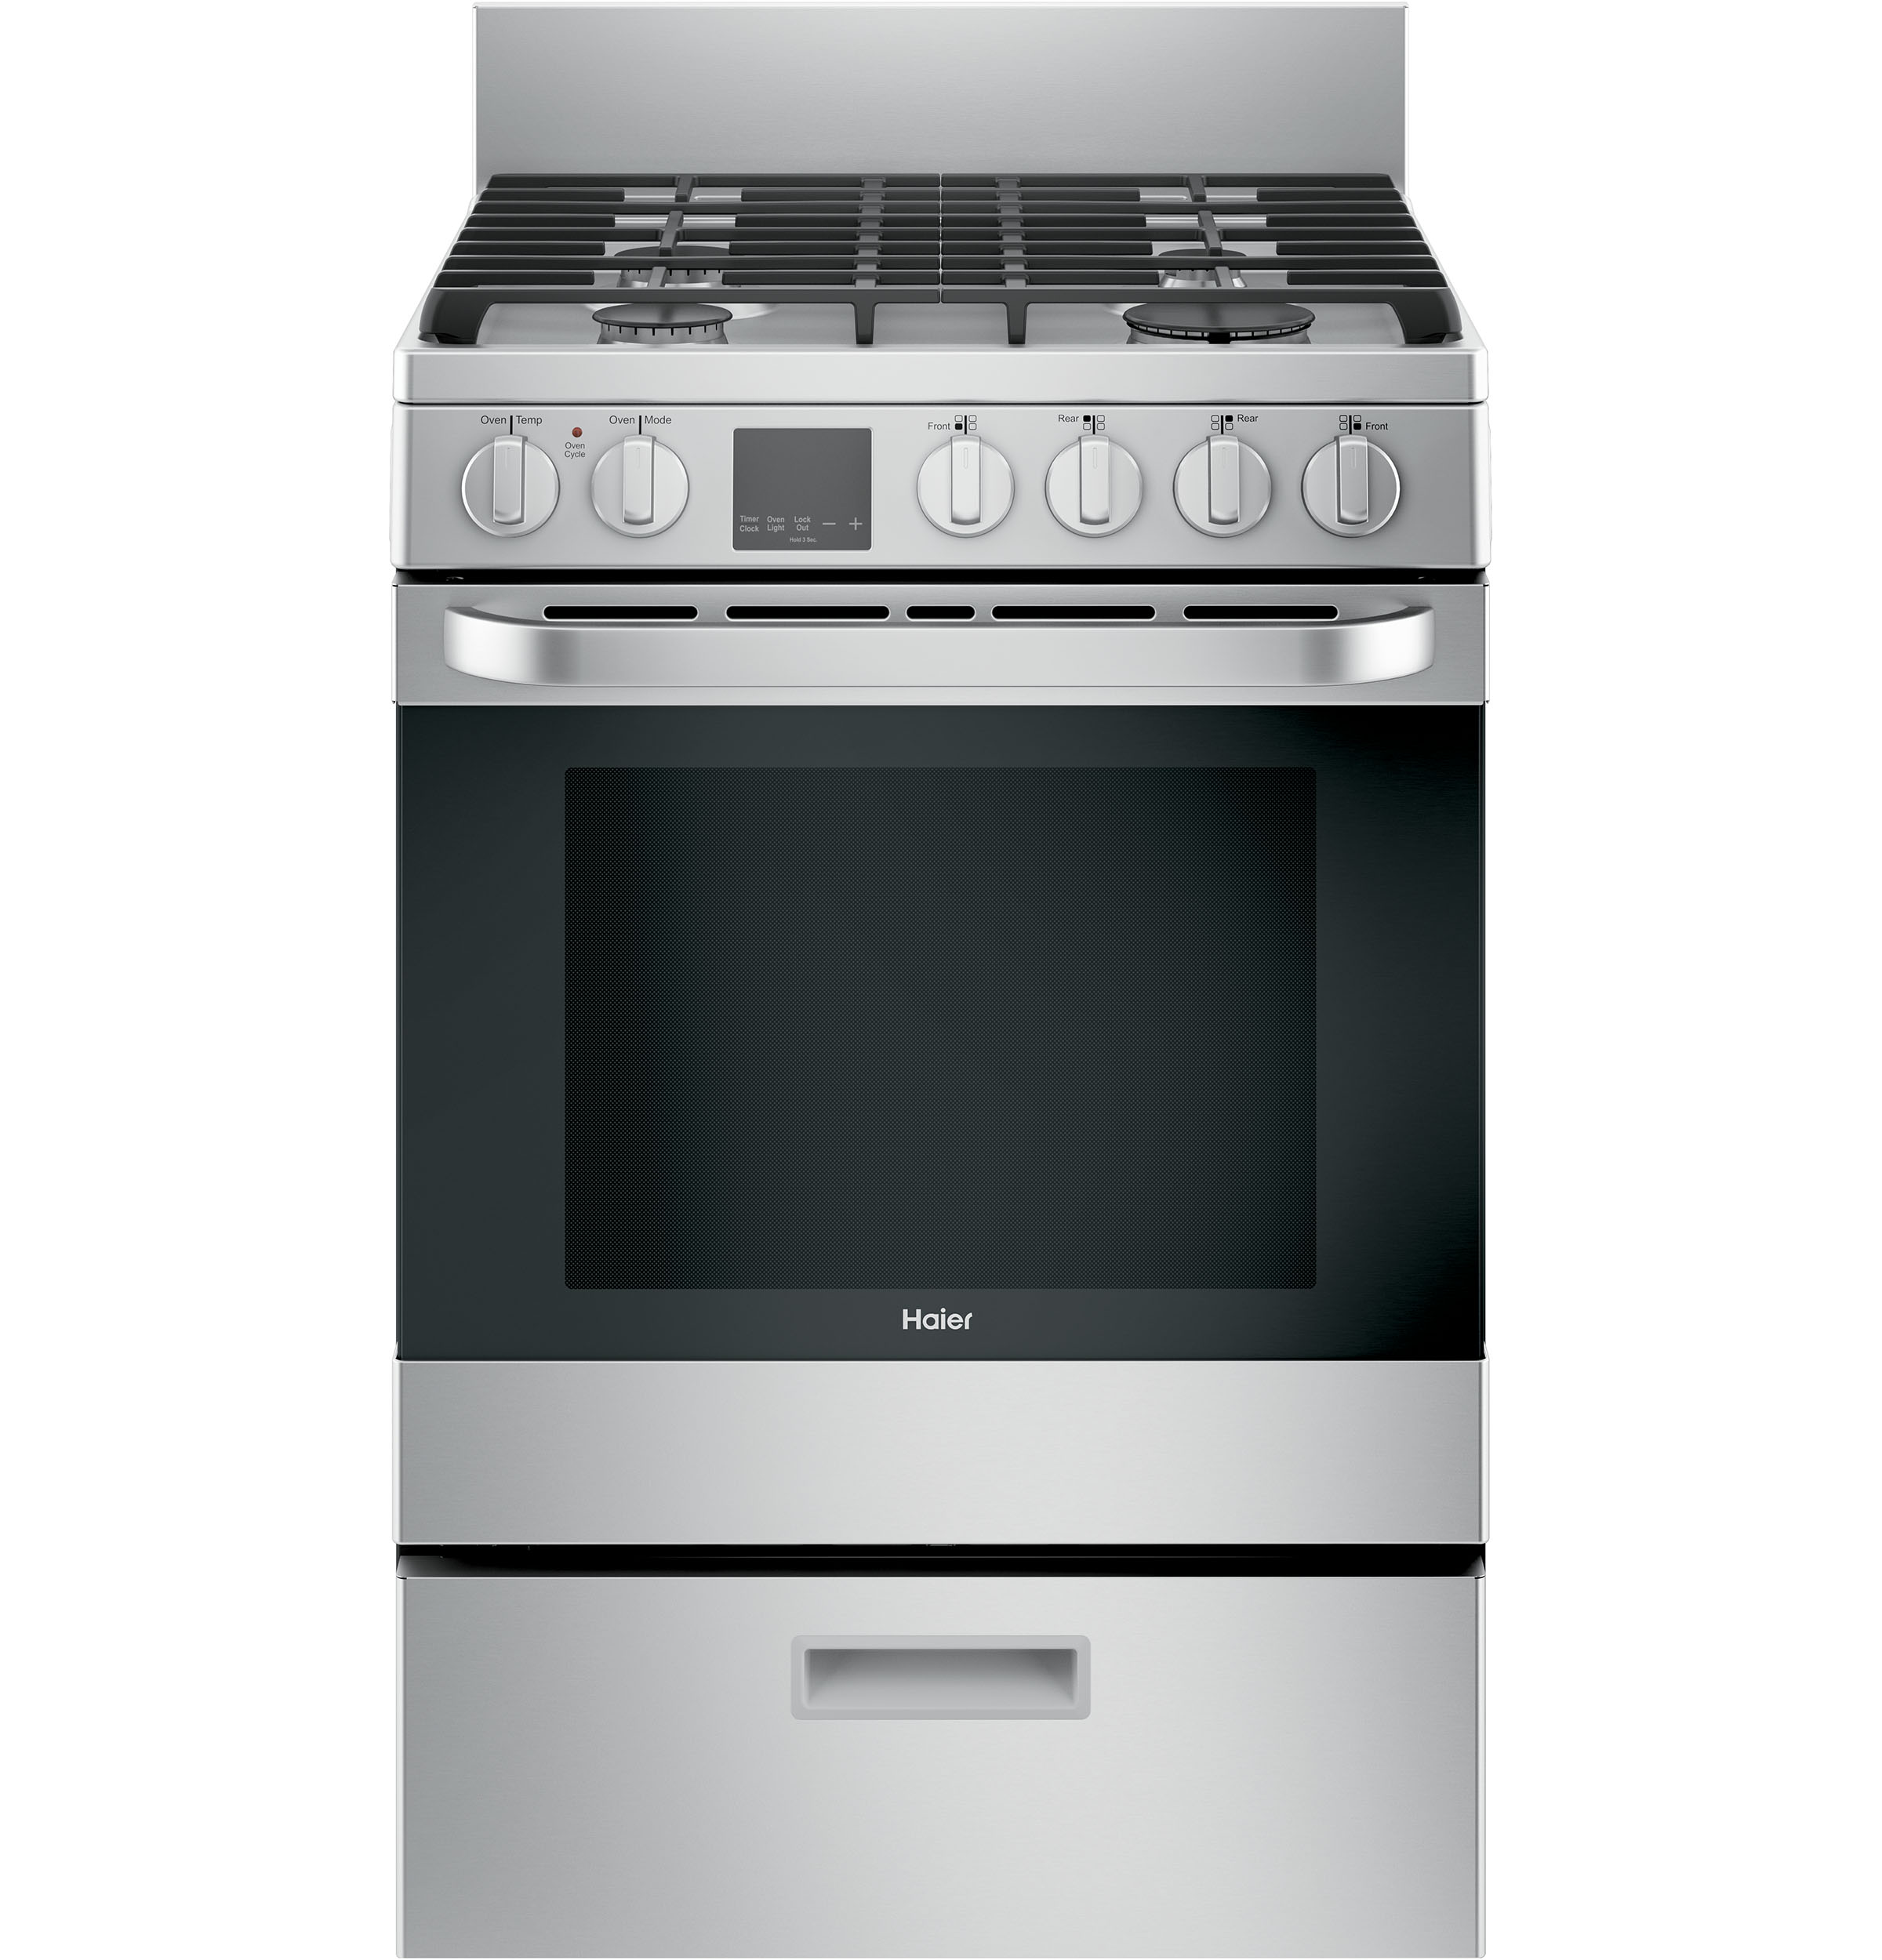 Qgas740rmss 24 2 9 Cu Ft Gas Free Standing Range With Convection And Modular Backguard Haier Appliances